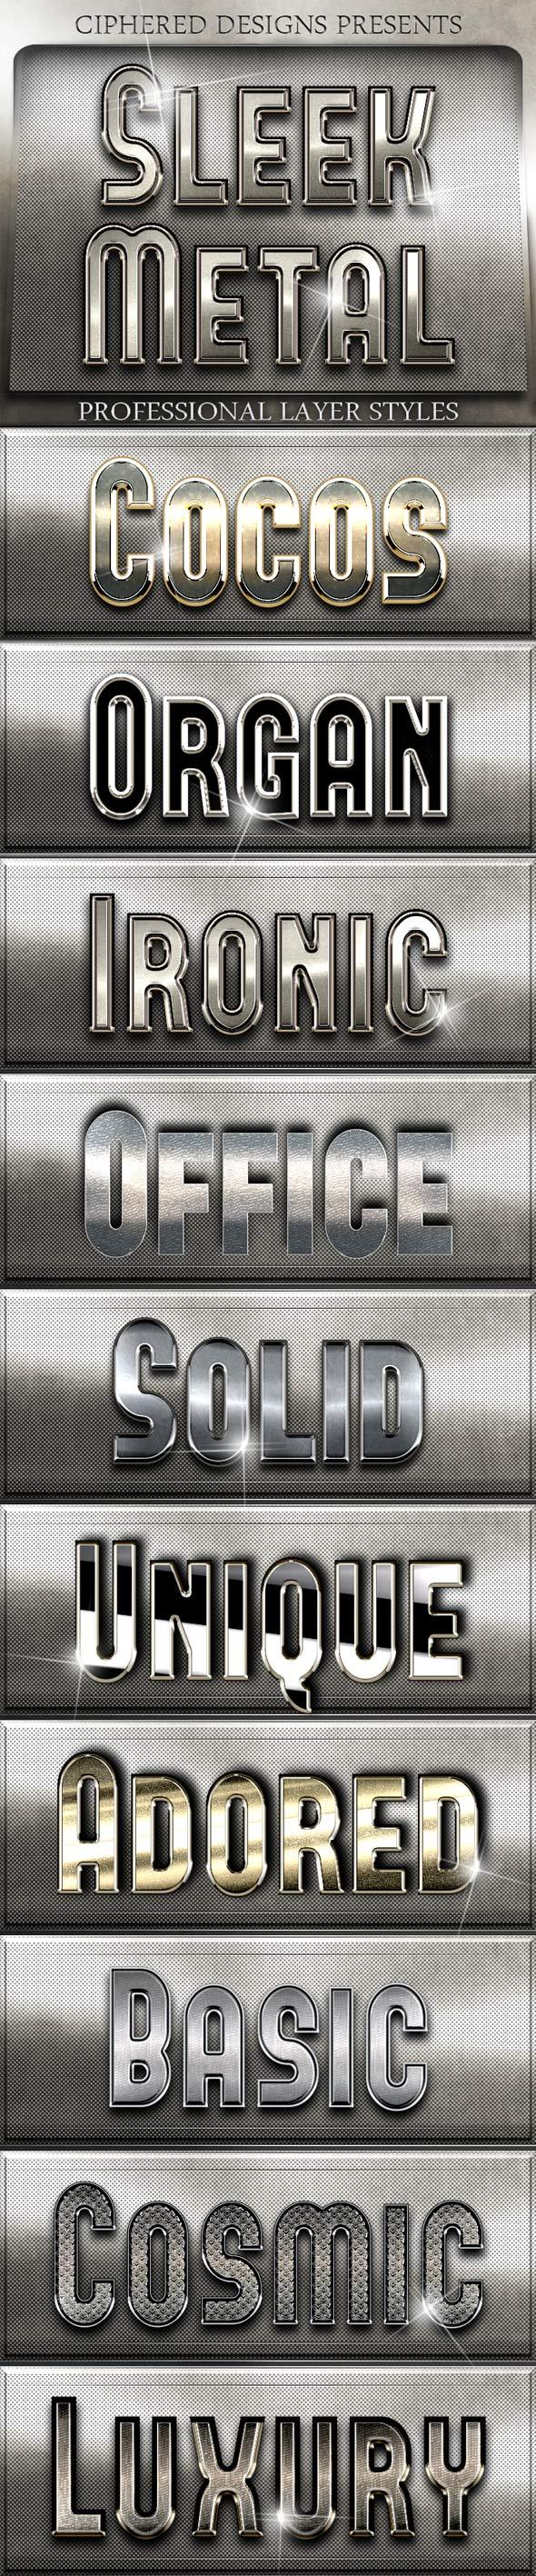 Sleek Metal - Professional Layer Styles - Text Effects Styles